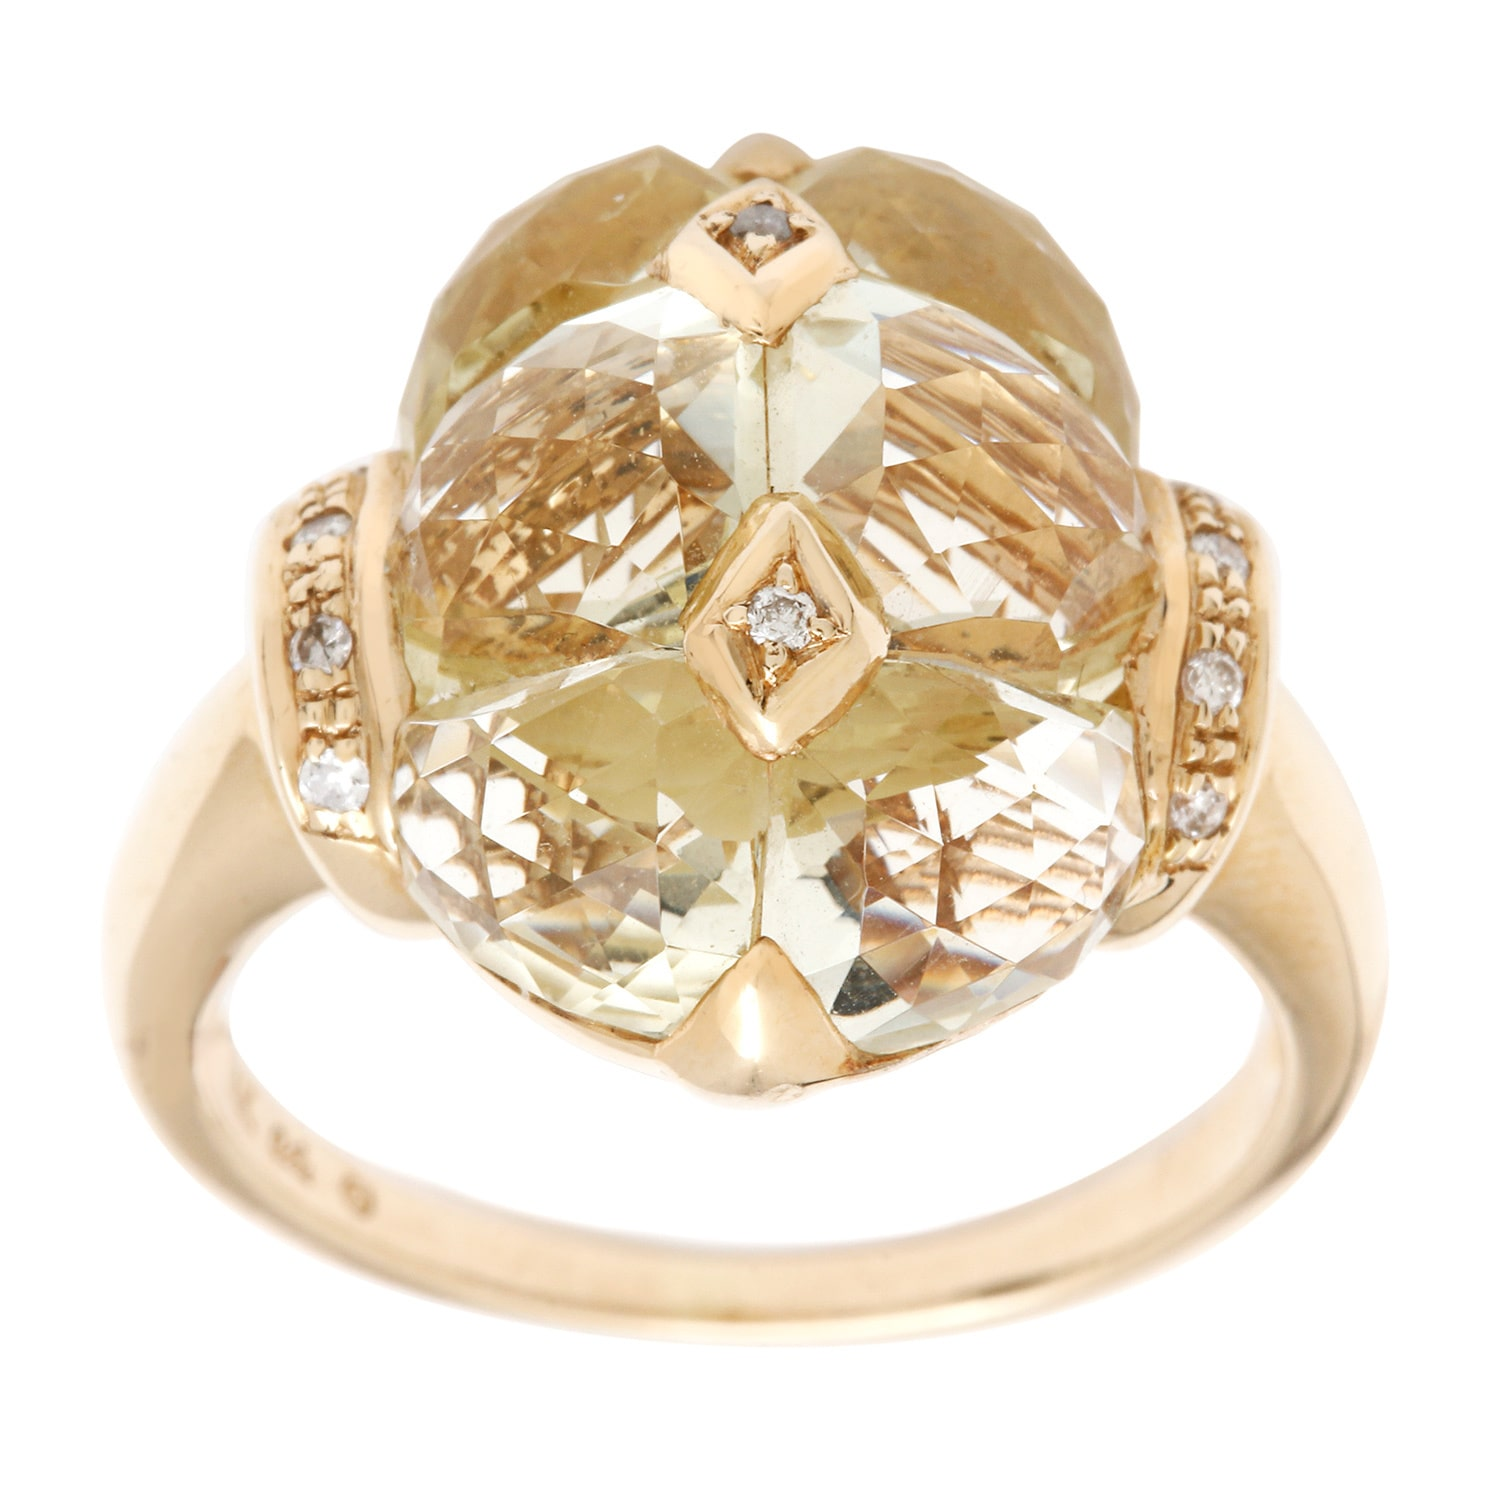 ASHER JEWELRY 14k Yellow Gold Lemon Quartz and Diamond Accent Ring